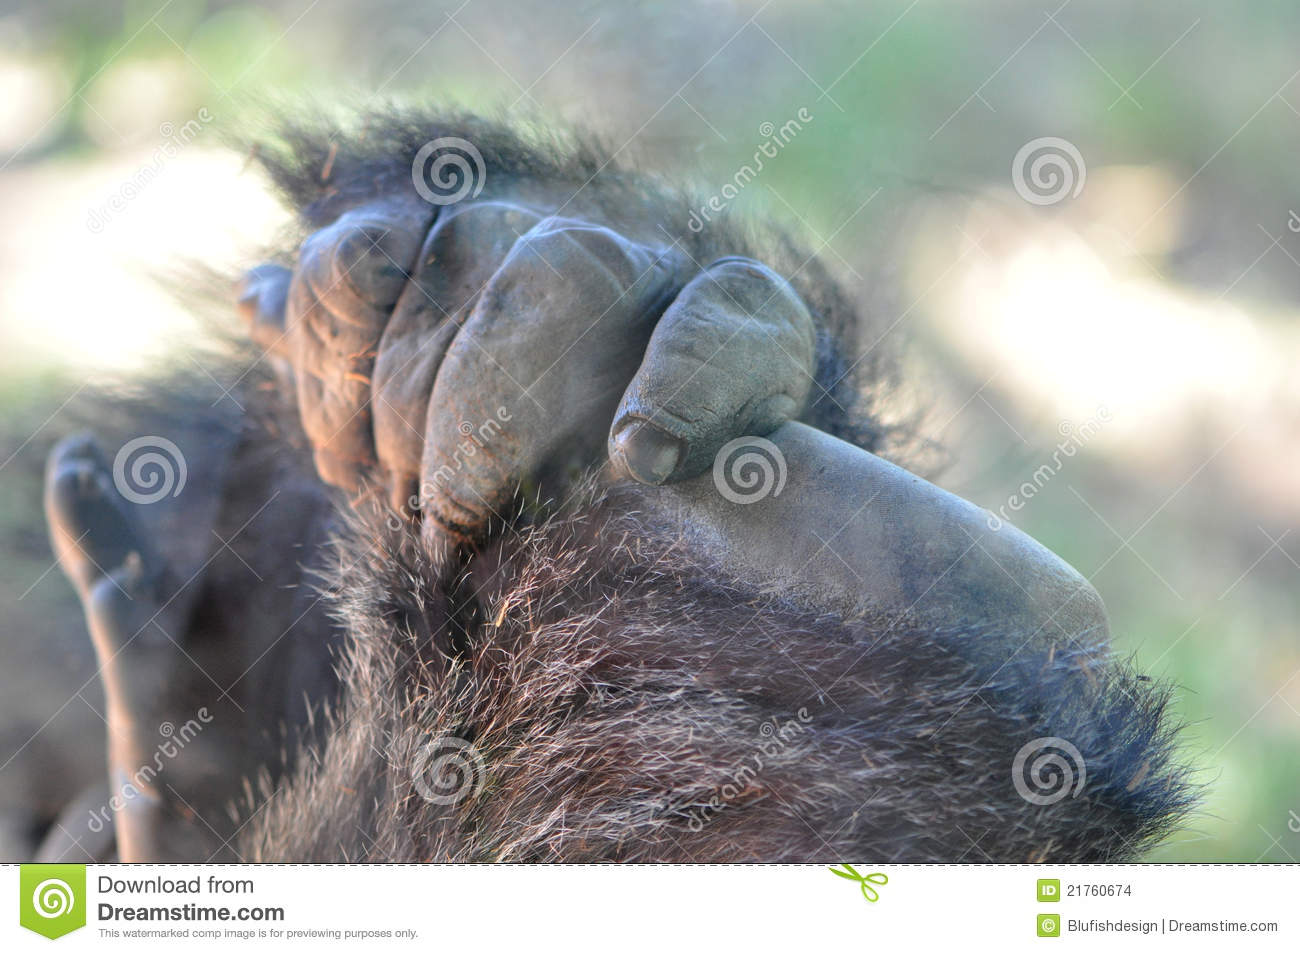 Download Primate Hand stock photo. Image of monkey, primate, horizontal - 21760674